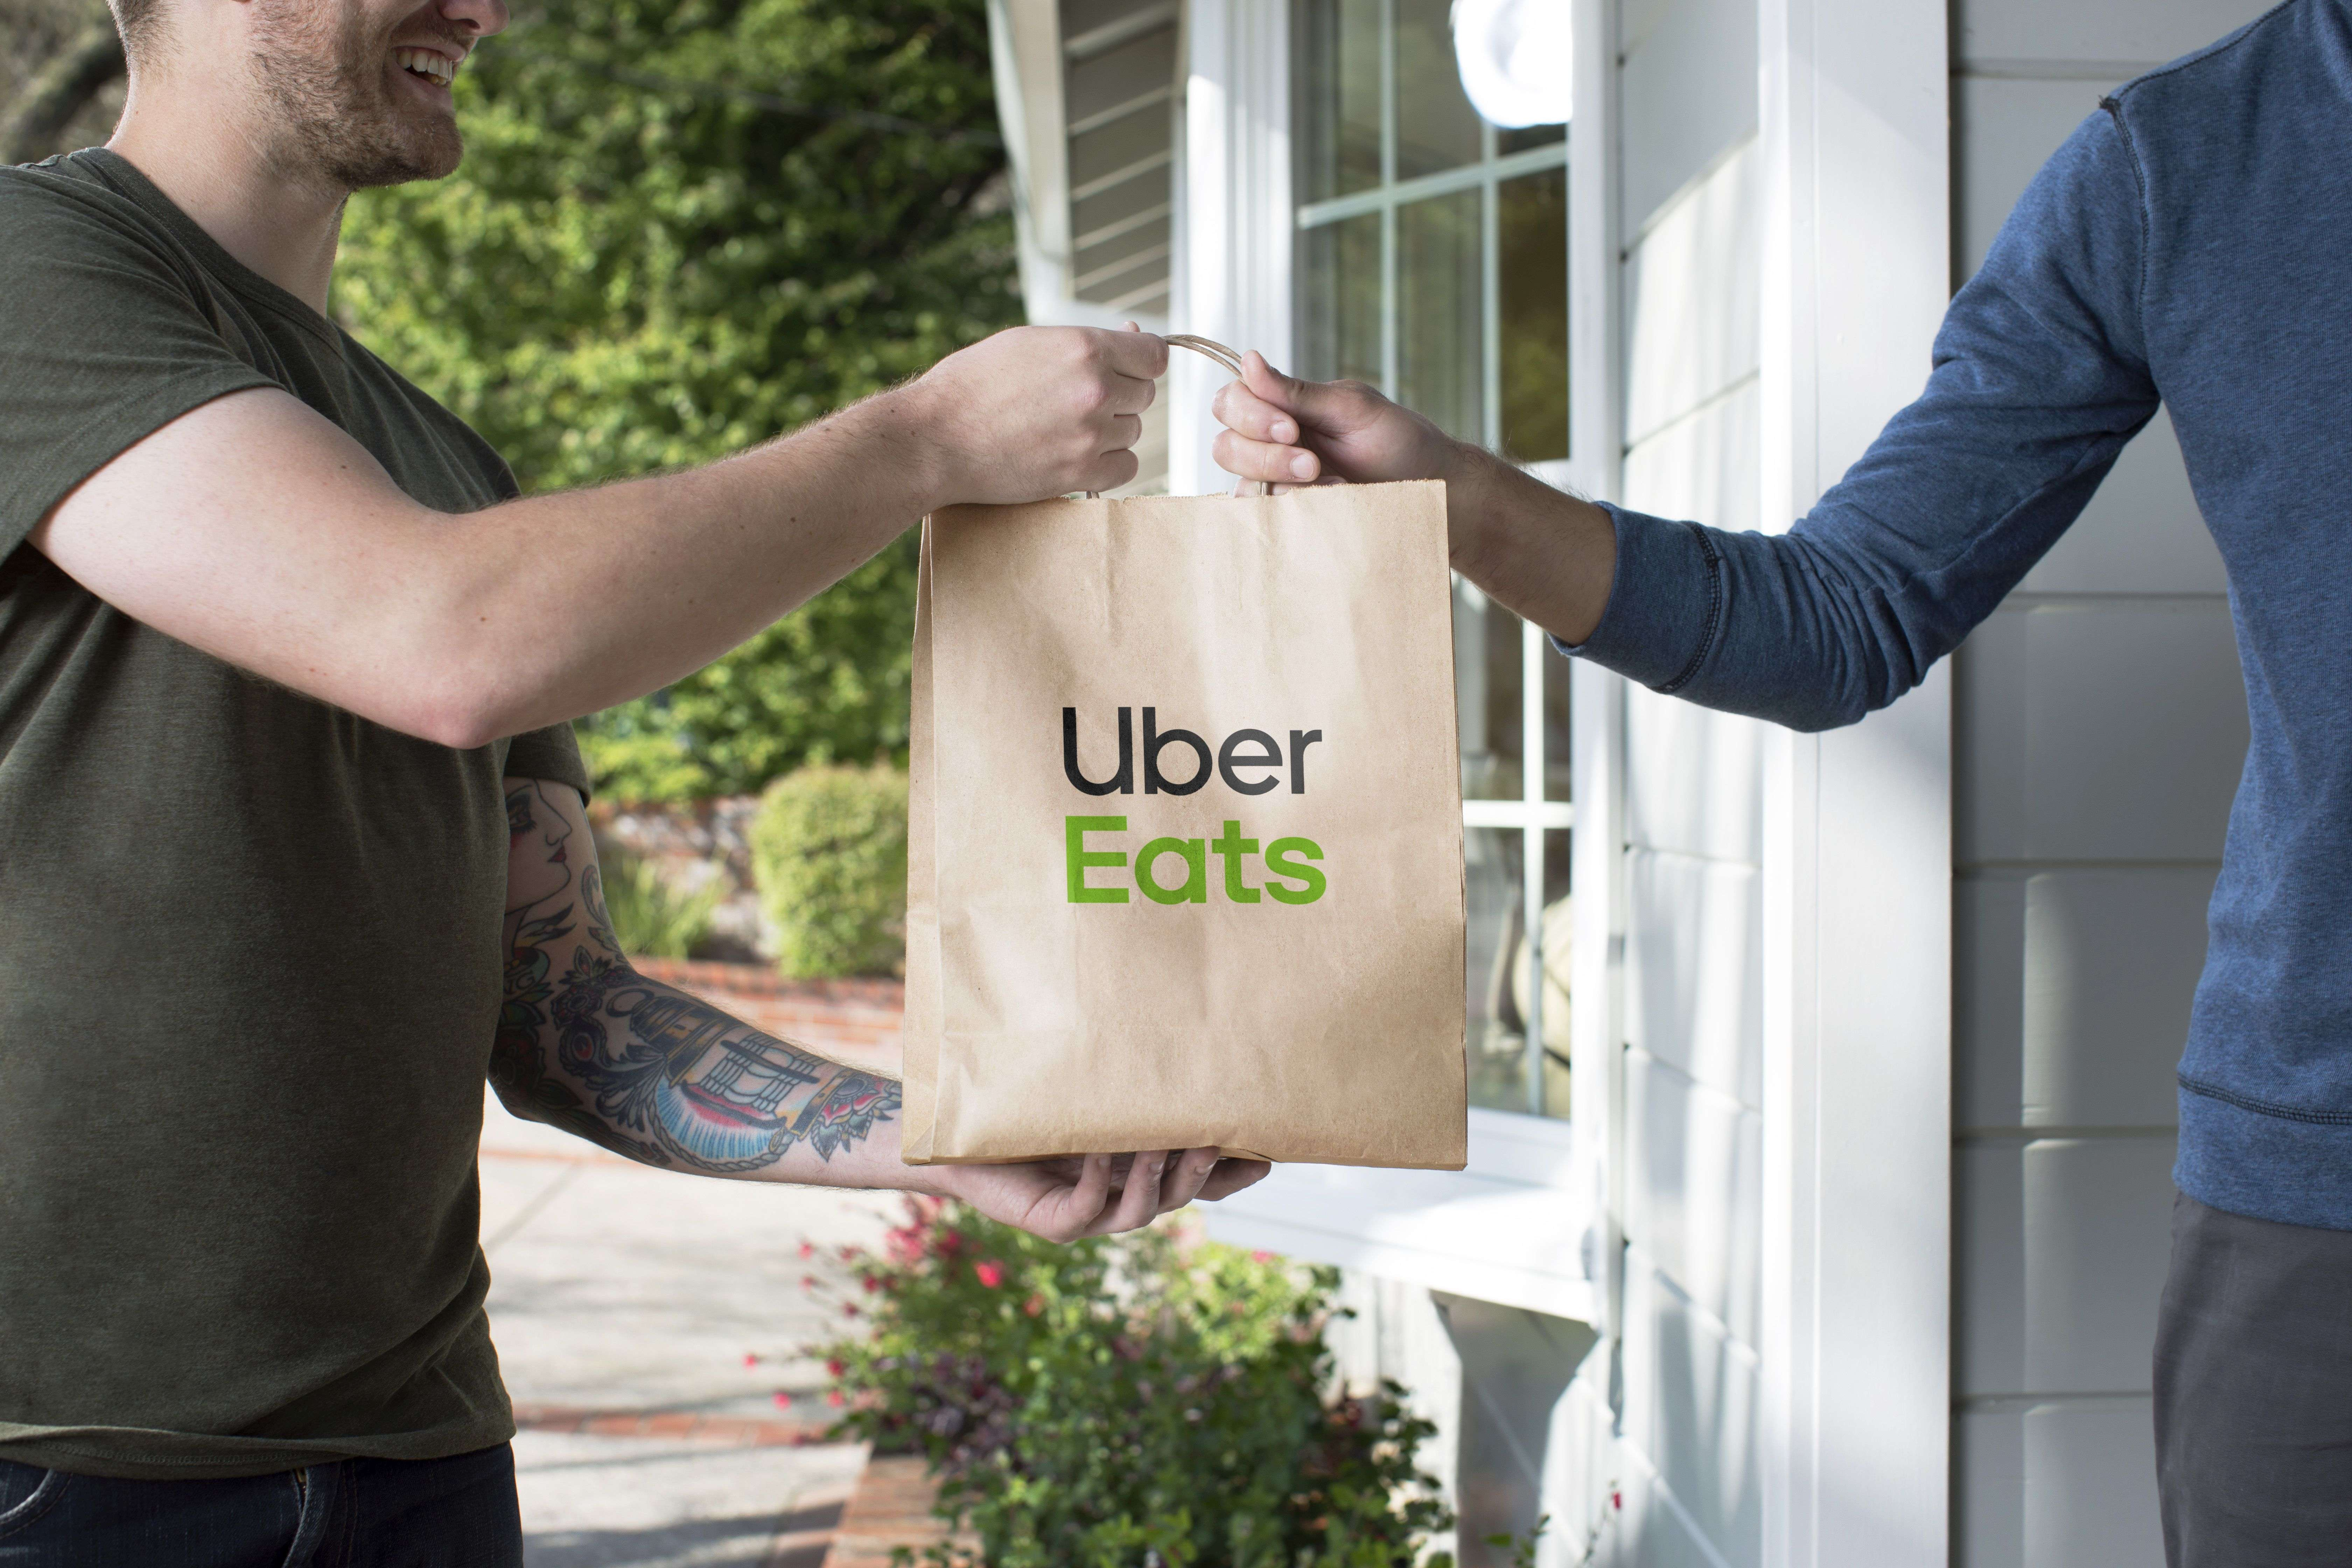 Uber Eats, March Madness